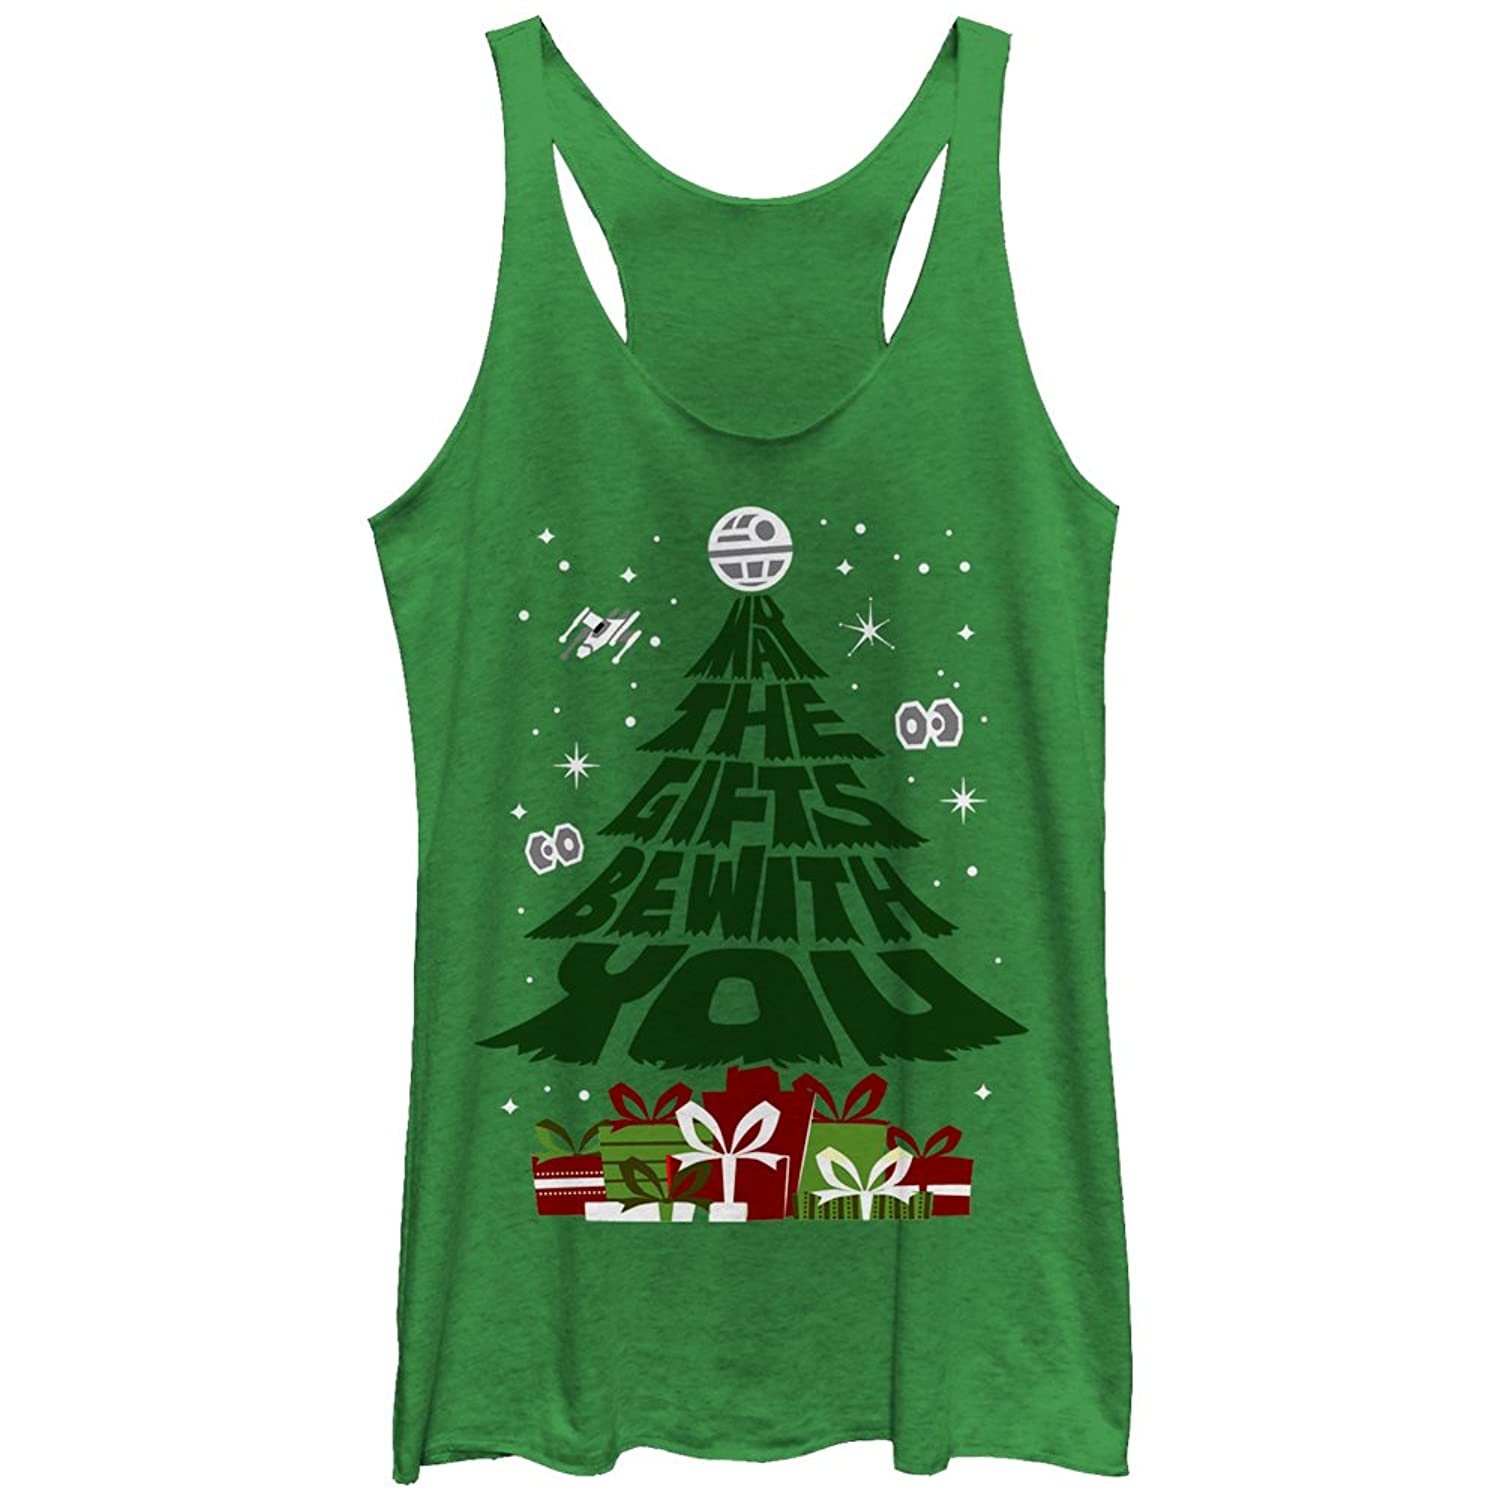 Star Wars Christmas Gifts Be With You Womens Graphic Racerback Tank